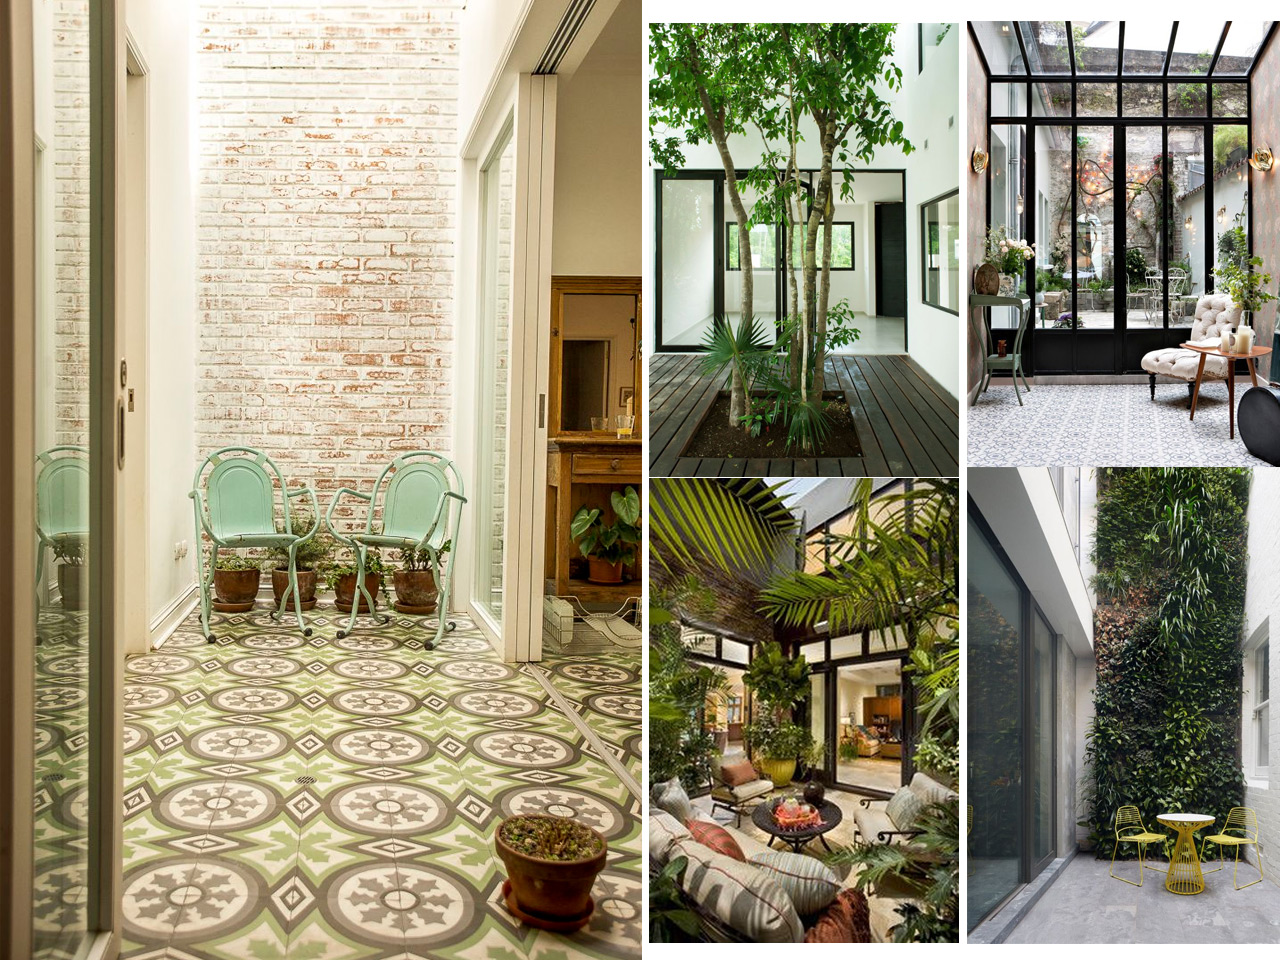 Tus 7 inspiraciones de decoraci n de terrazas interiores for Decoracion de patios pequenos con plantas